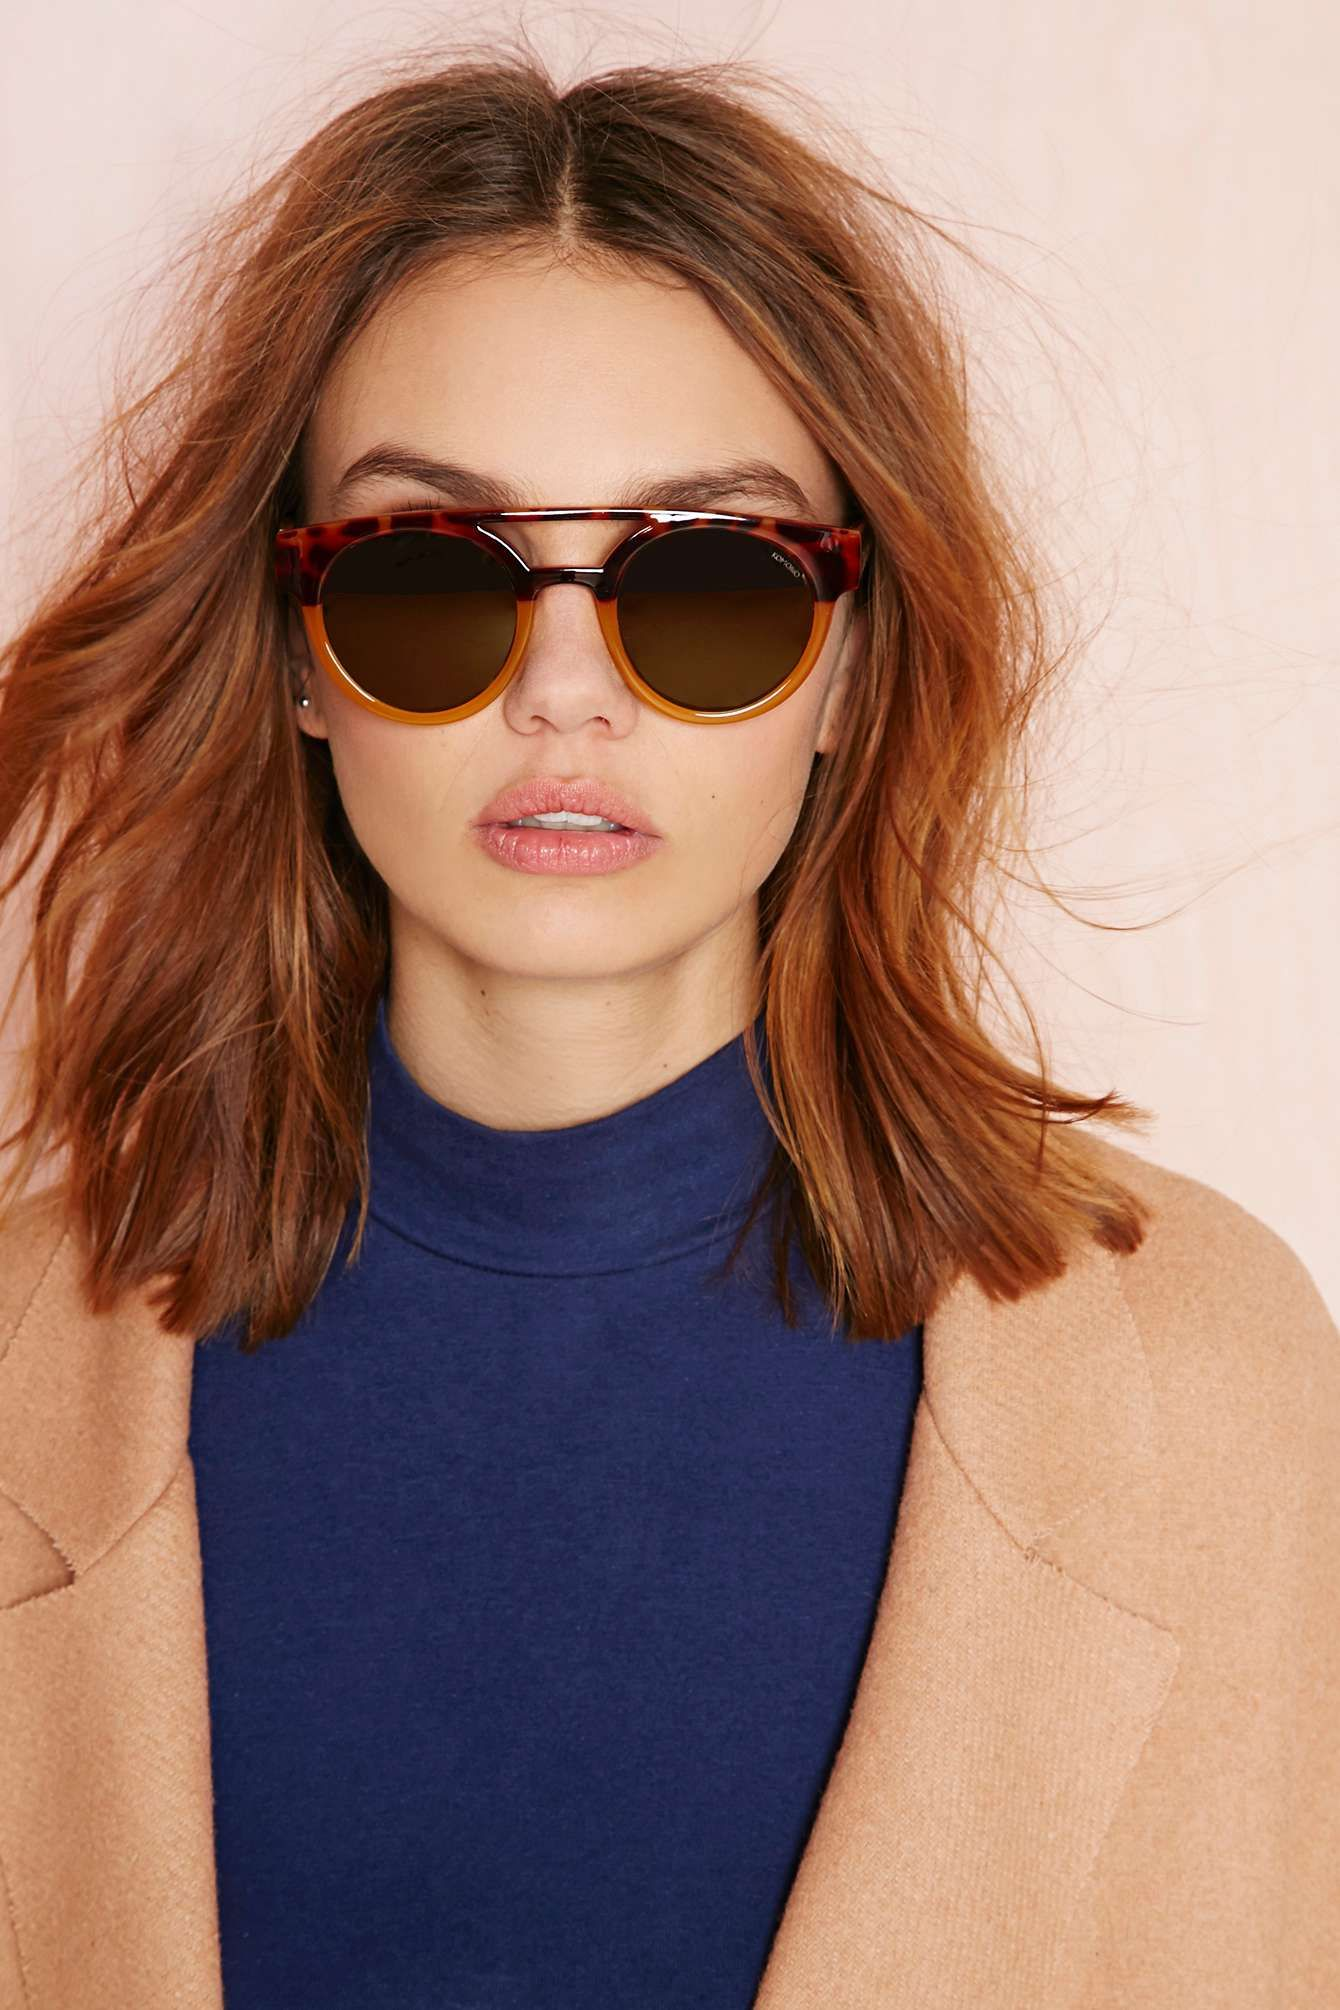 Round shades, navy and camel coat